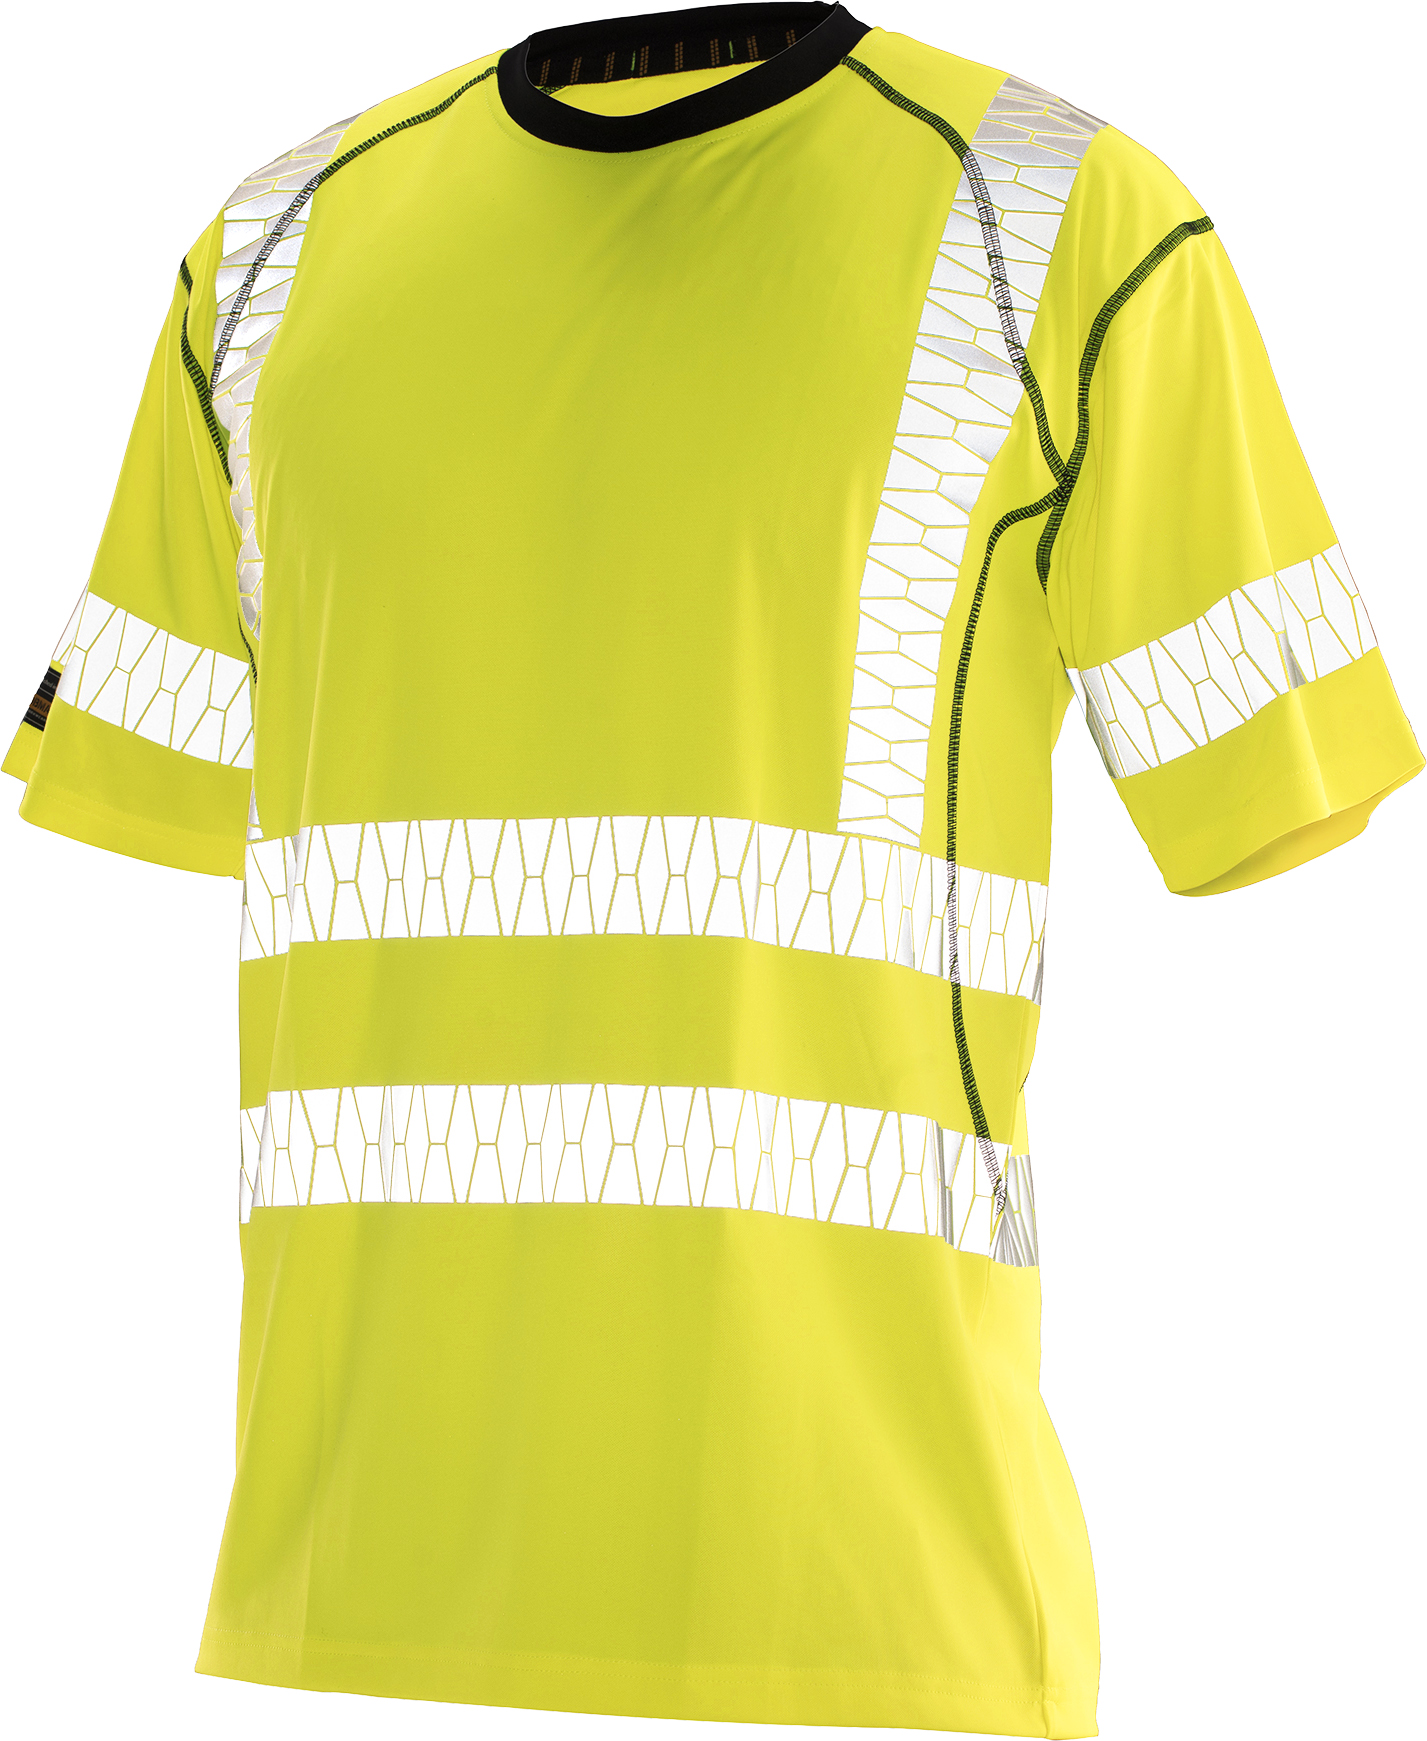 T-shirt anti-UV Hi-Vis